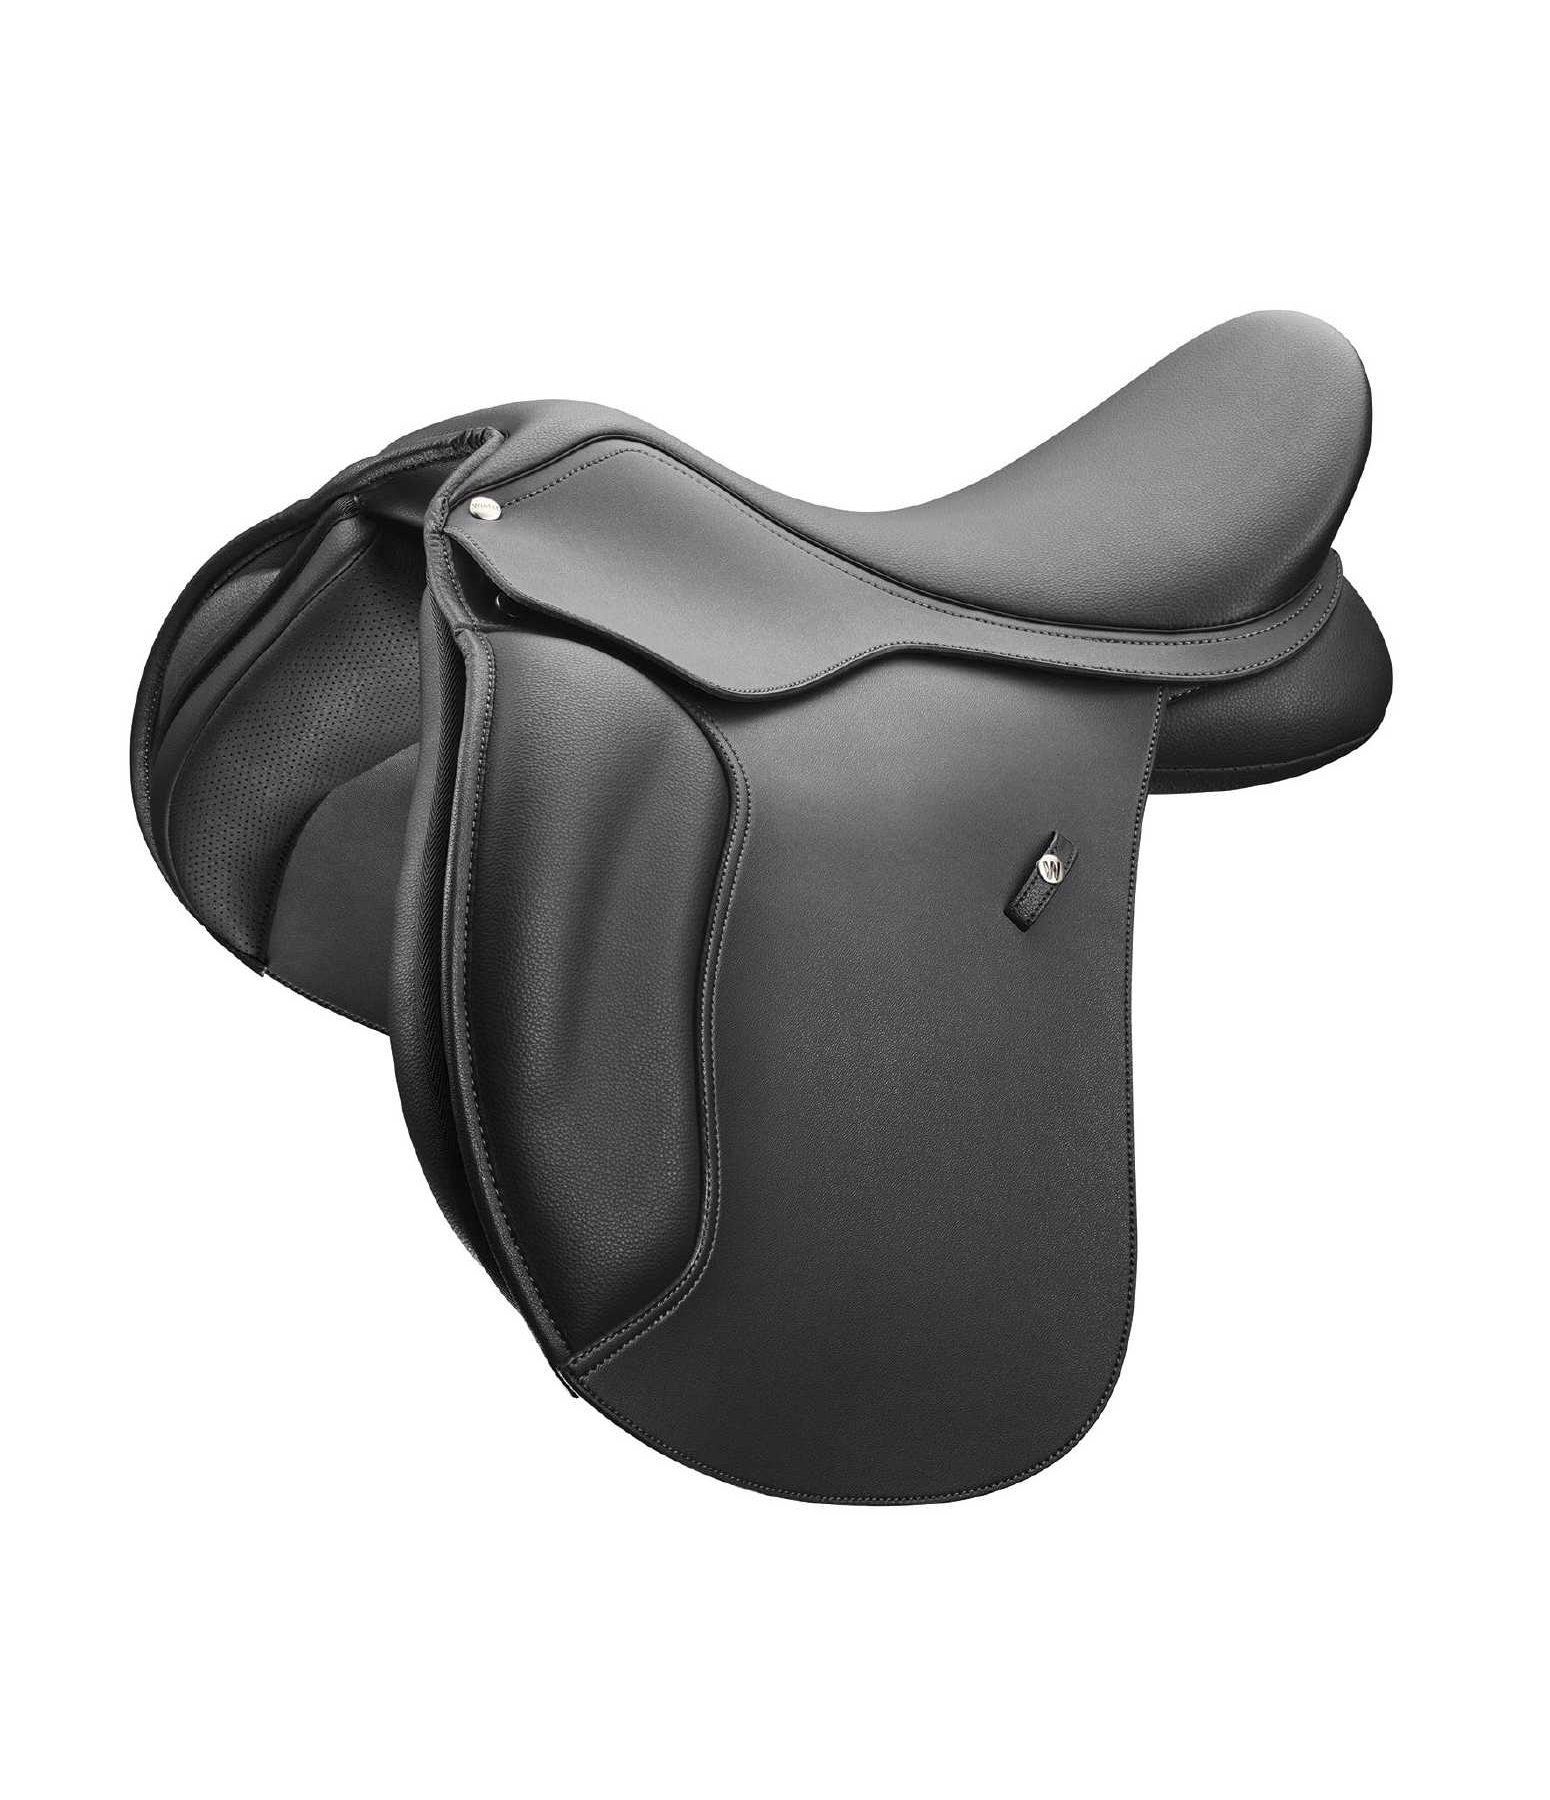 500 Wide General Purpose Saddle HART